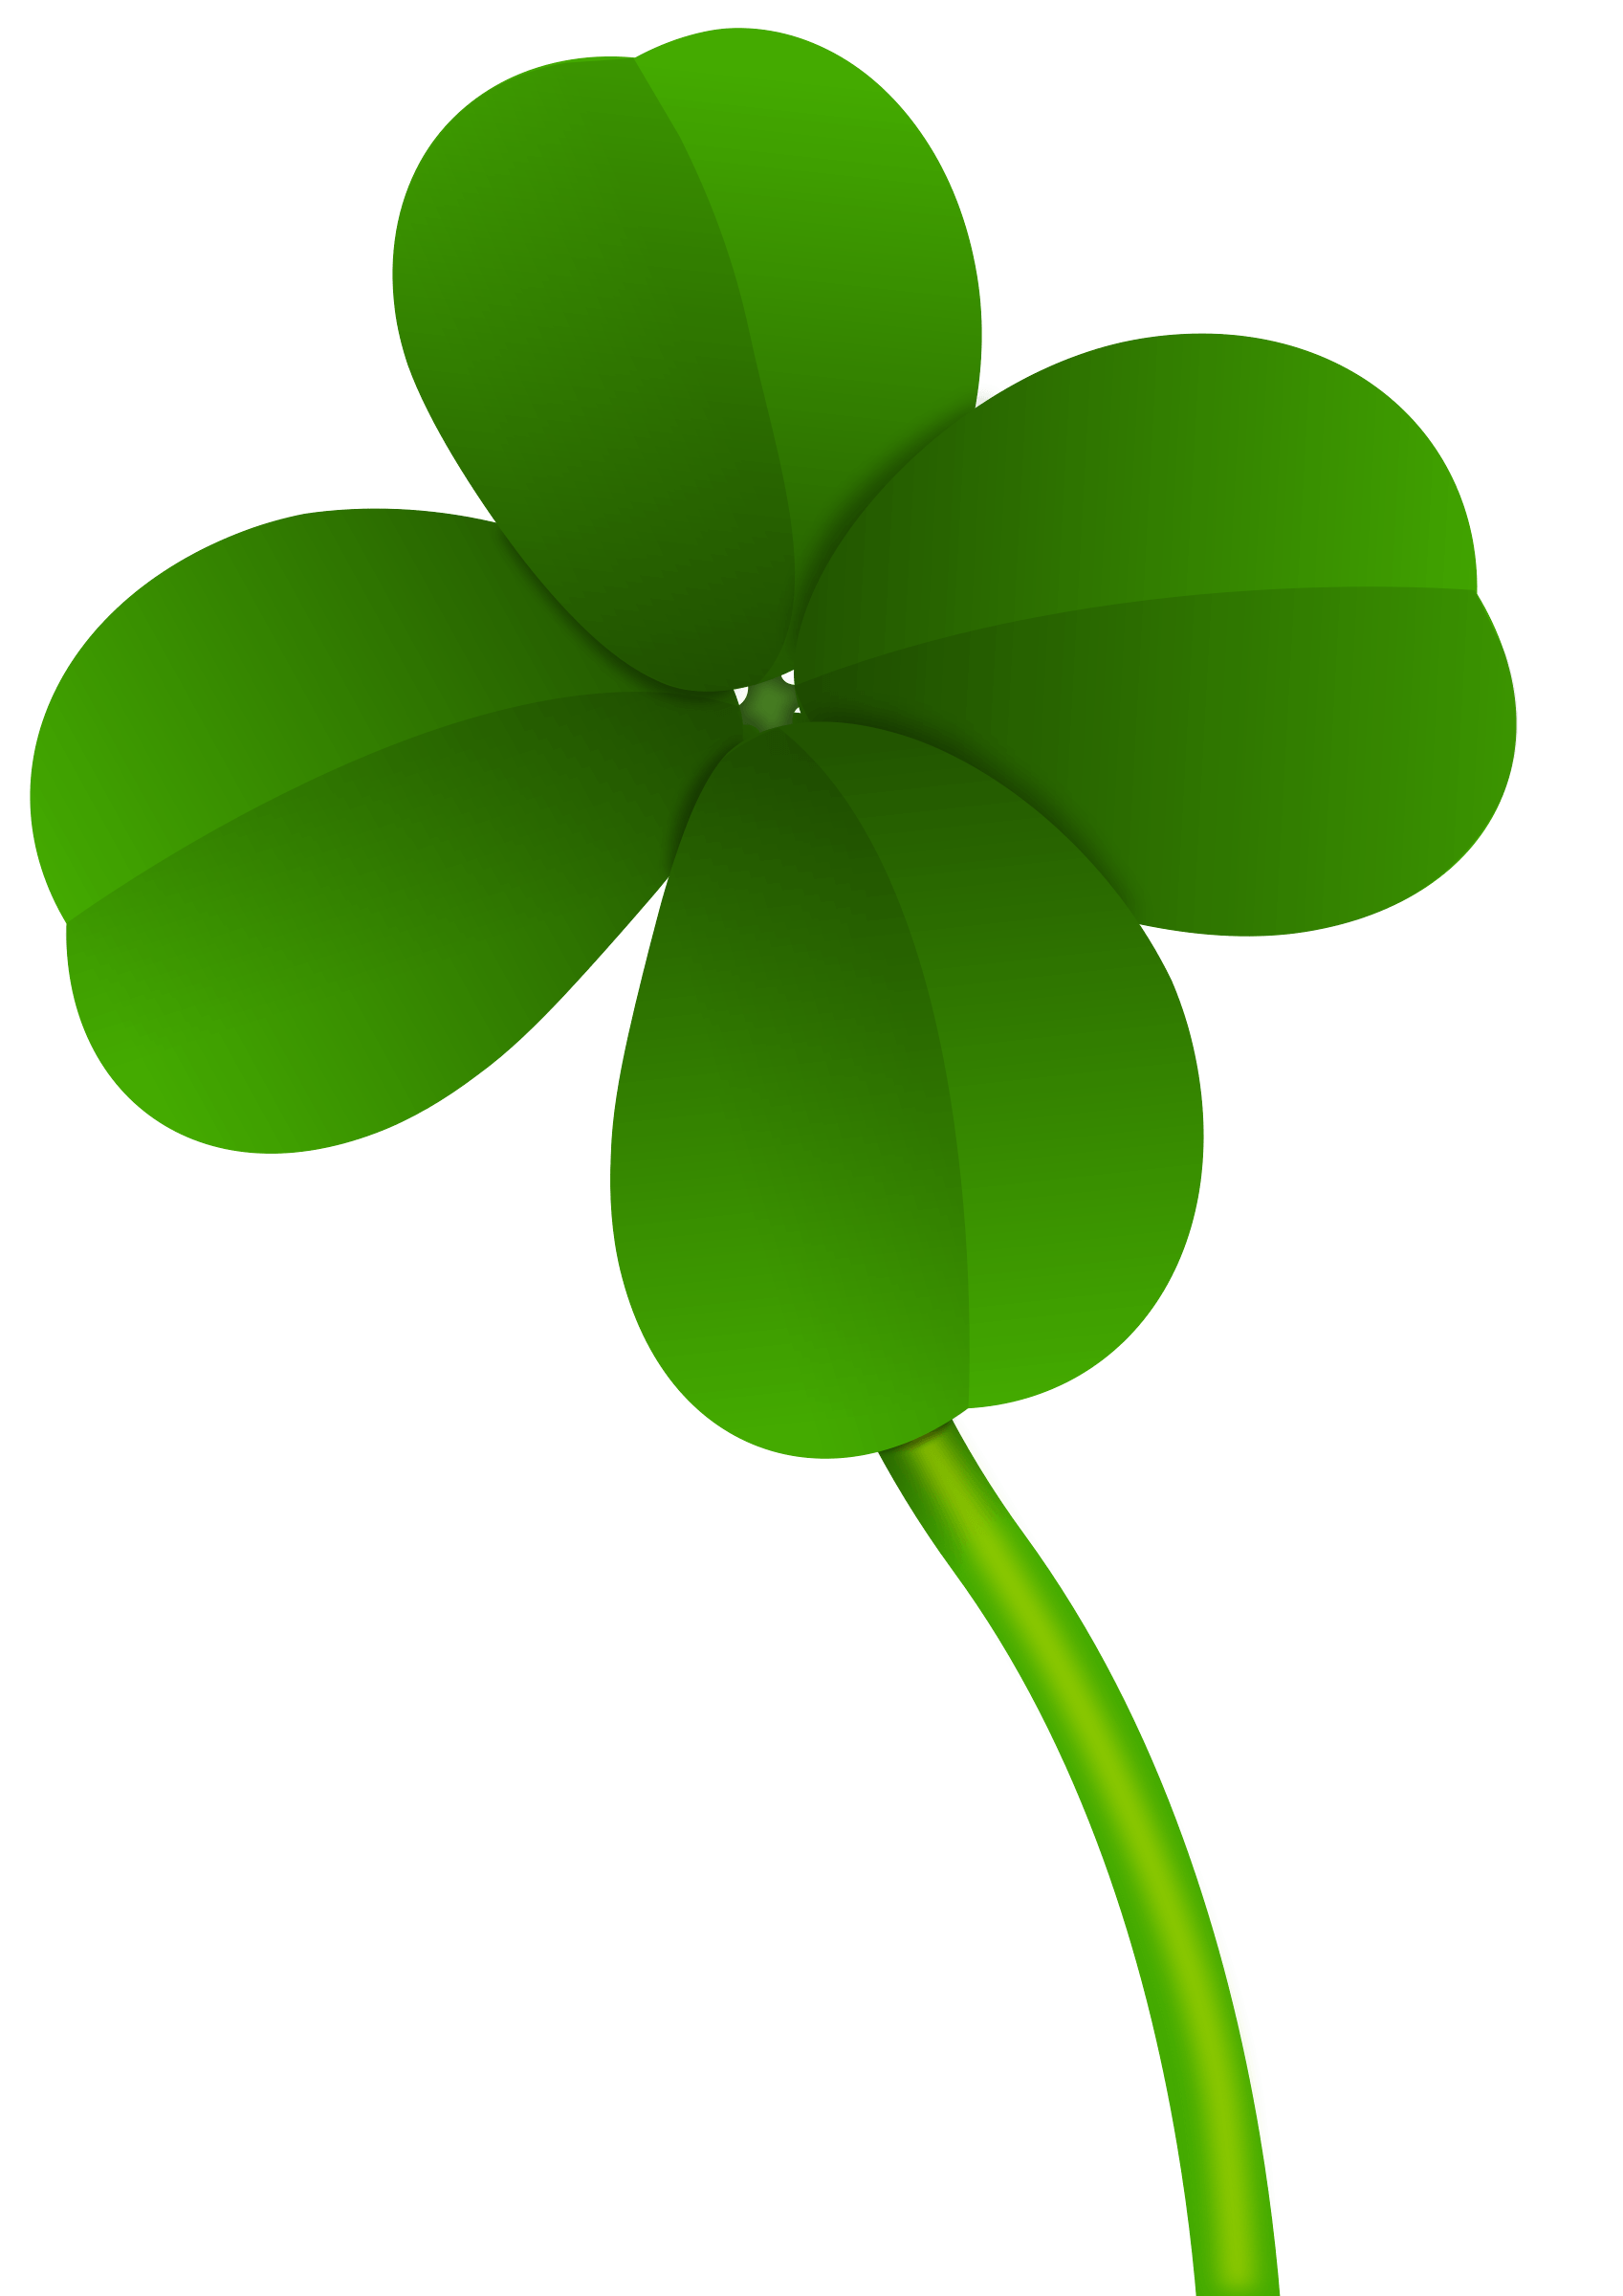 Green Clover Png Image PNG Image